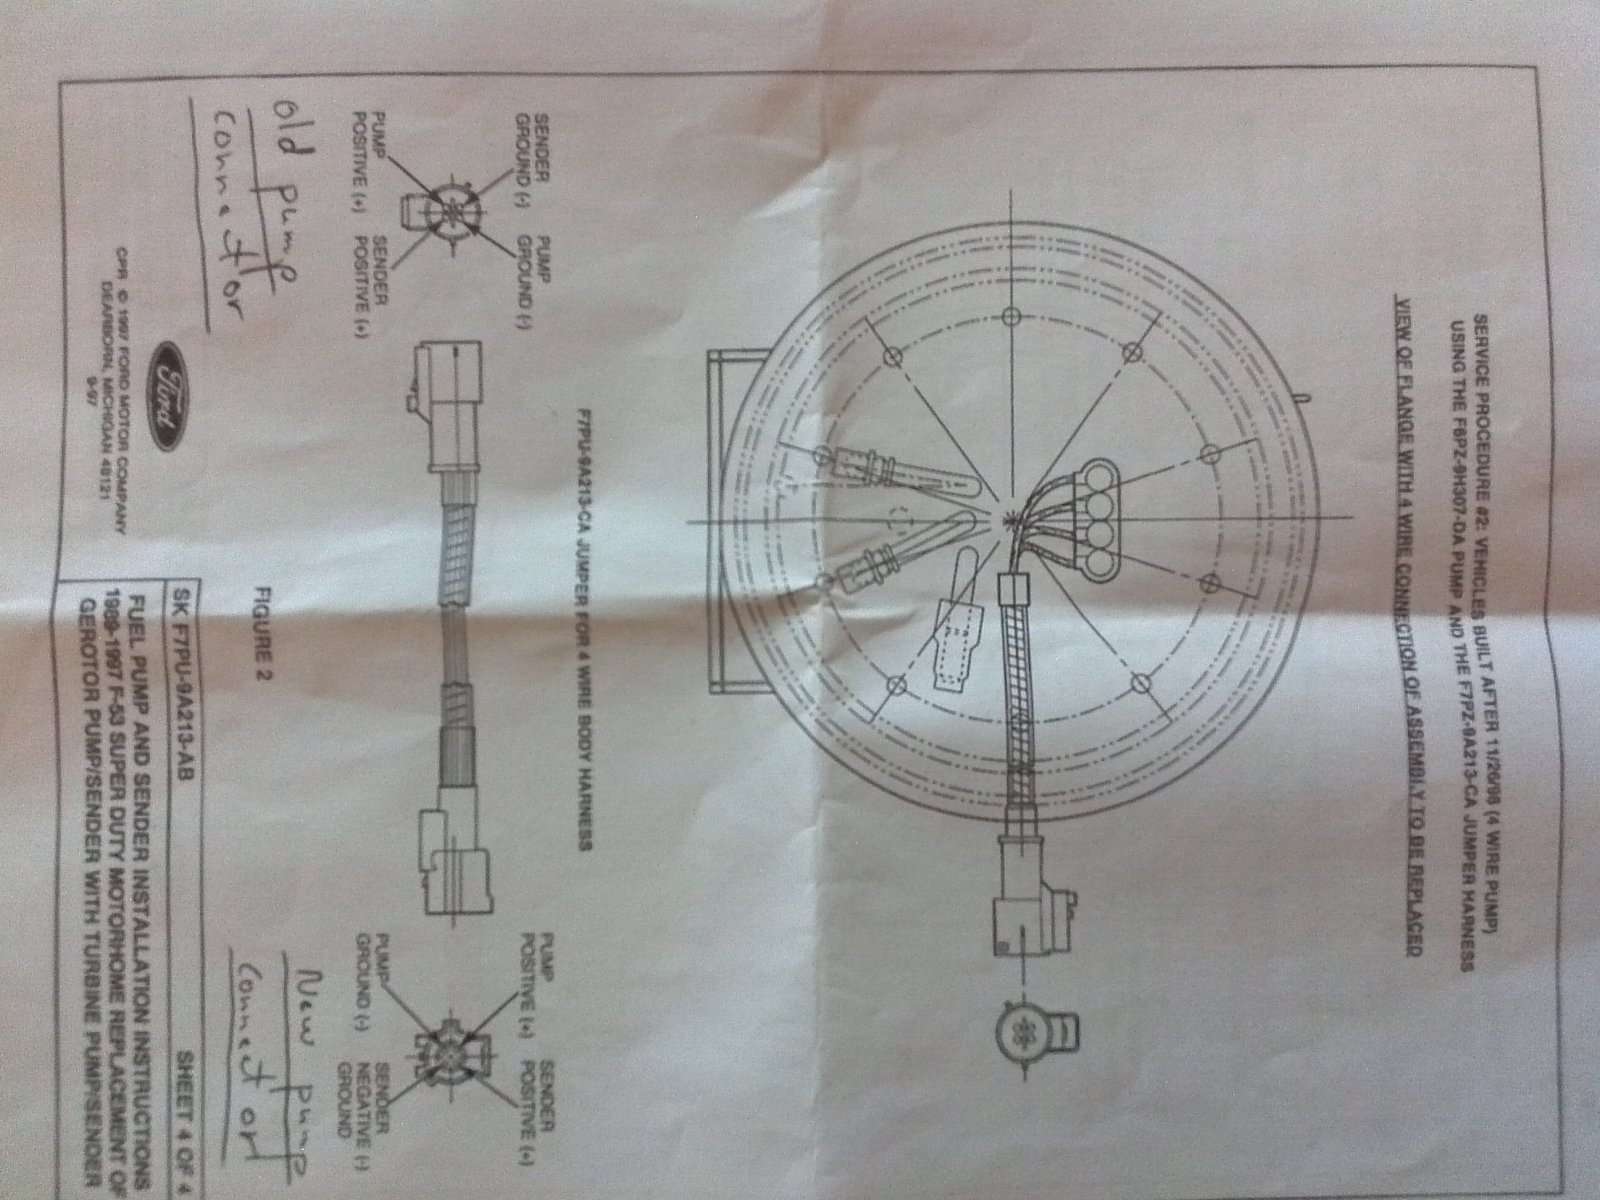 Ford Blower Motor Wiring Diagram On Fuse Box Diagram Ford E150 Van